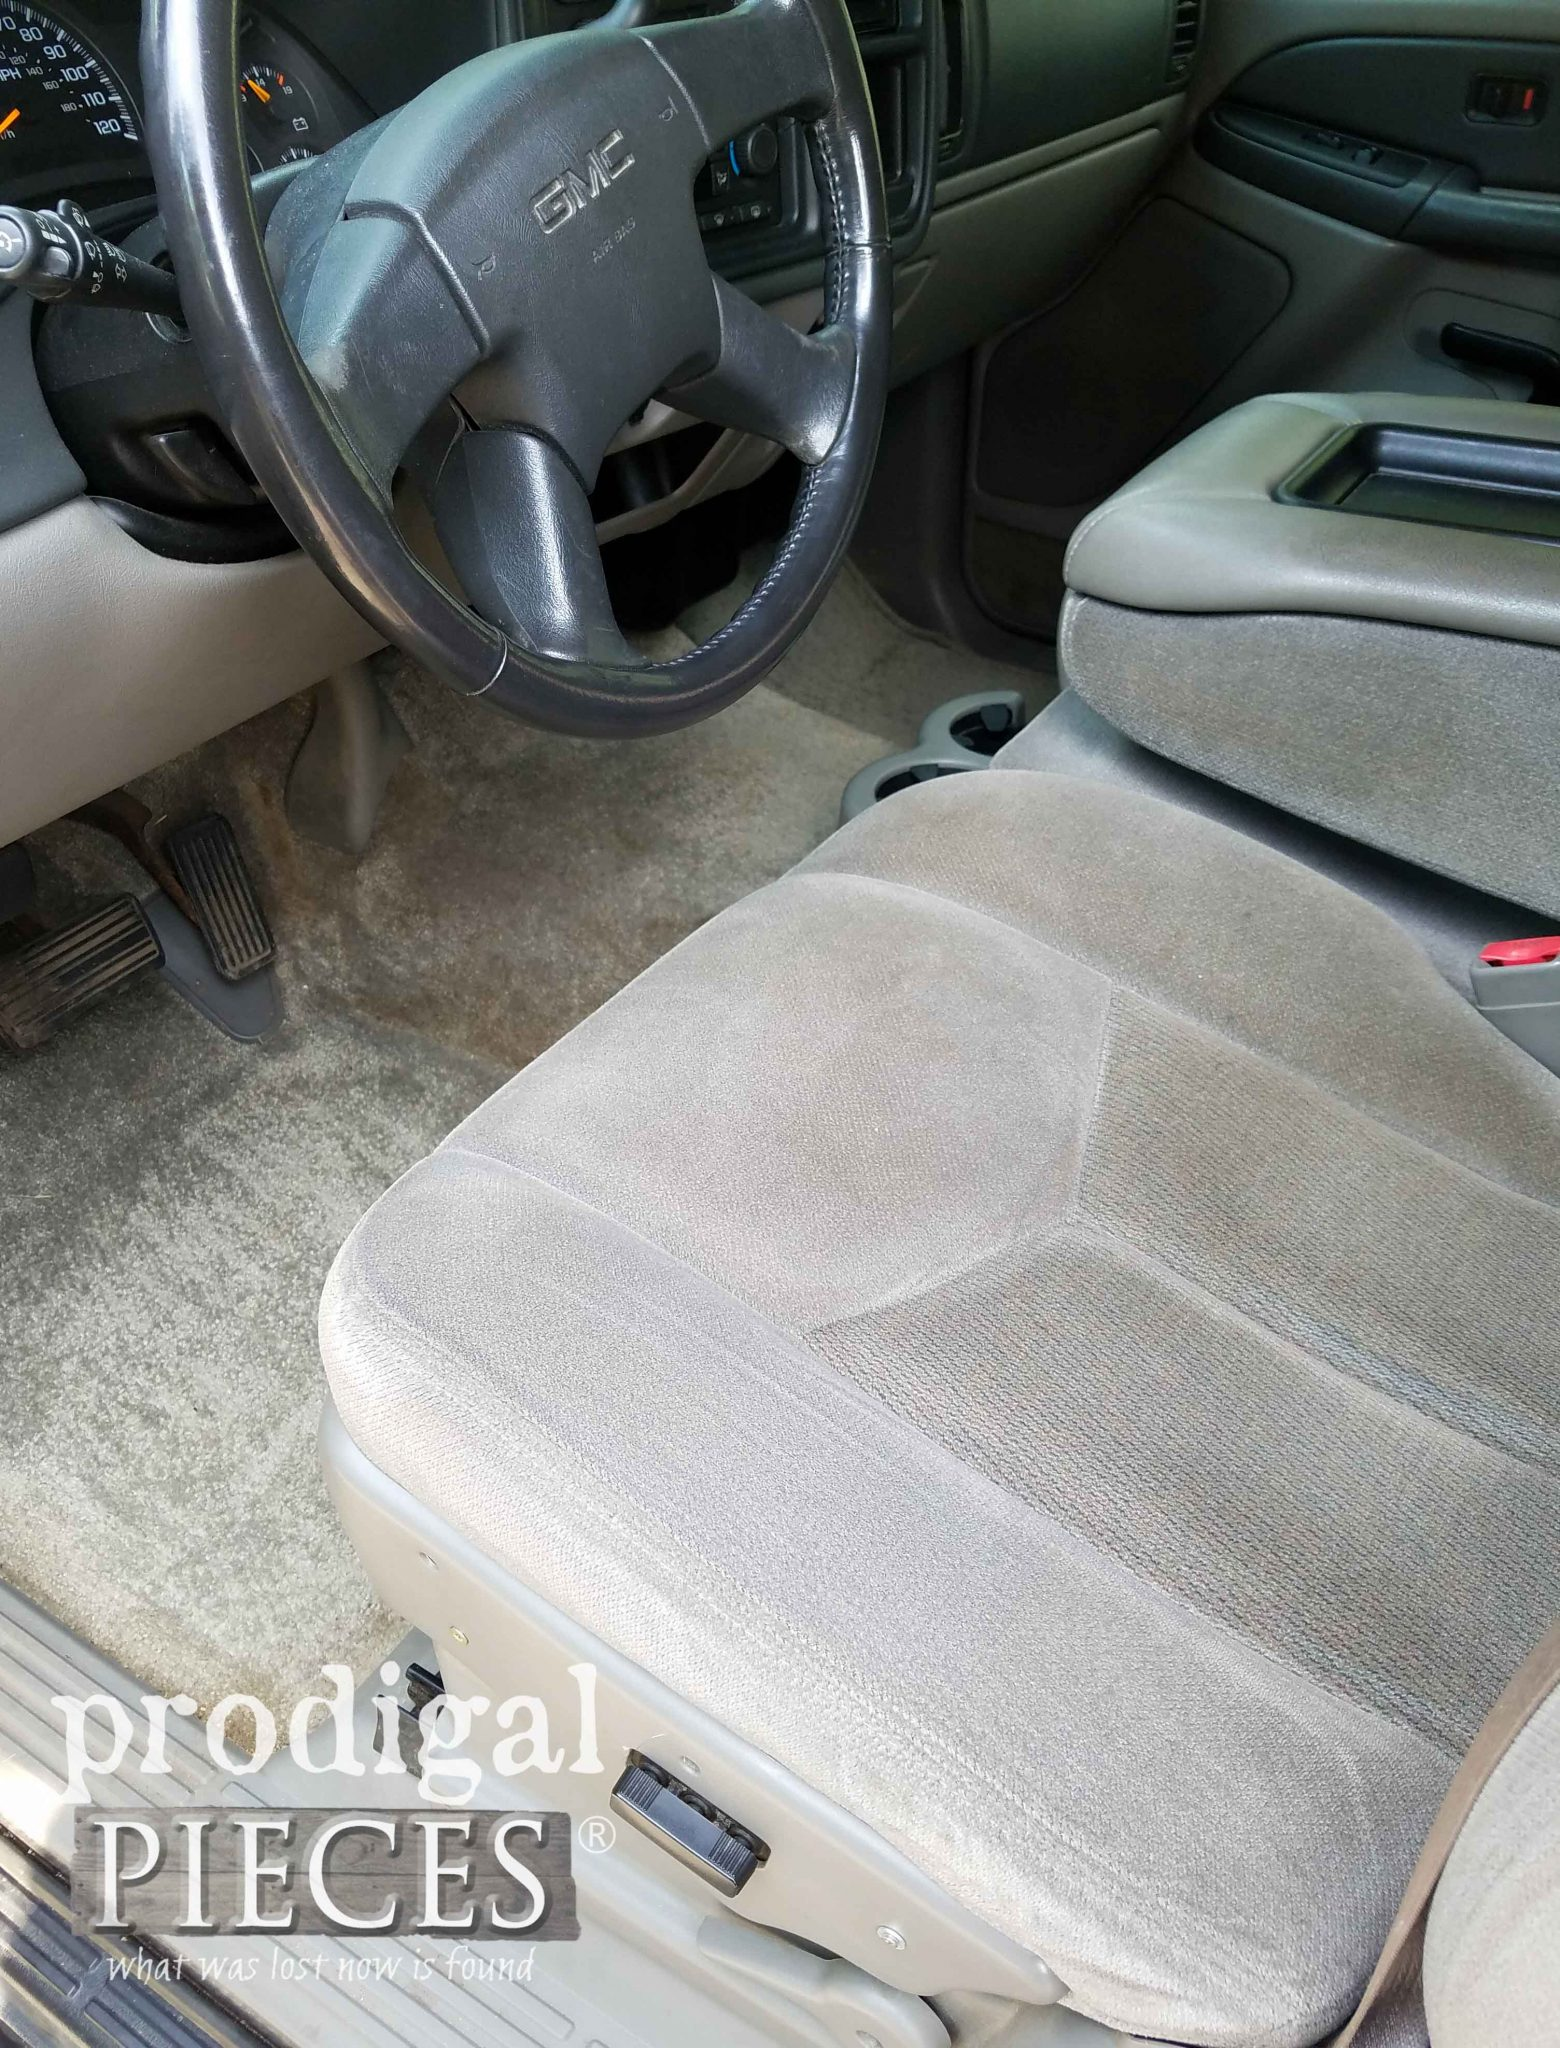 Truck Interior Before Winter-Ready Car Care | prodigalpieces.com